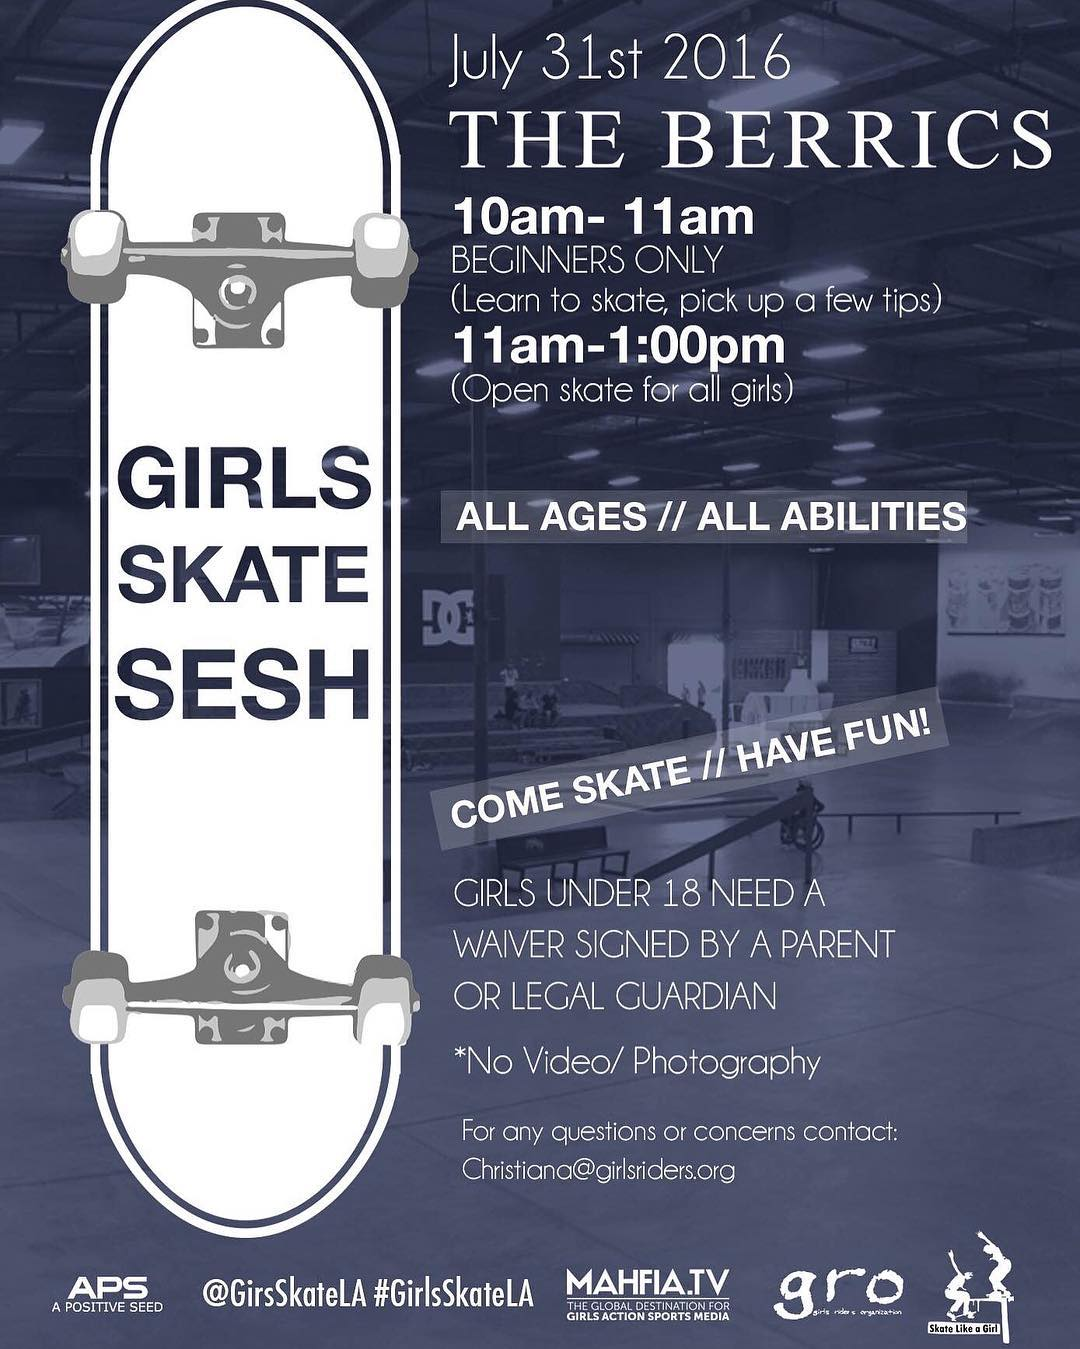 See you in a bit at the @berrics